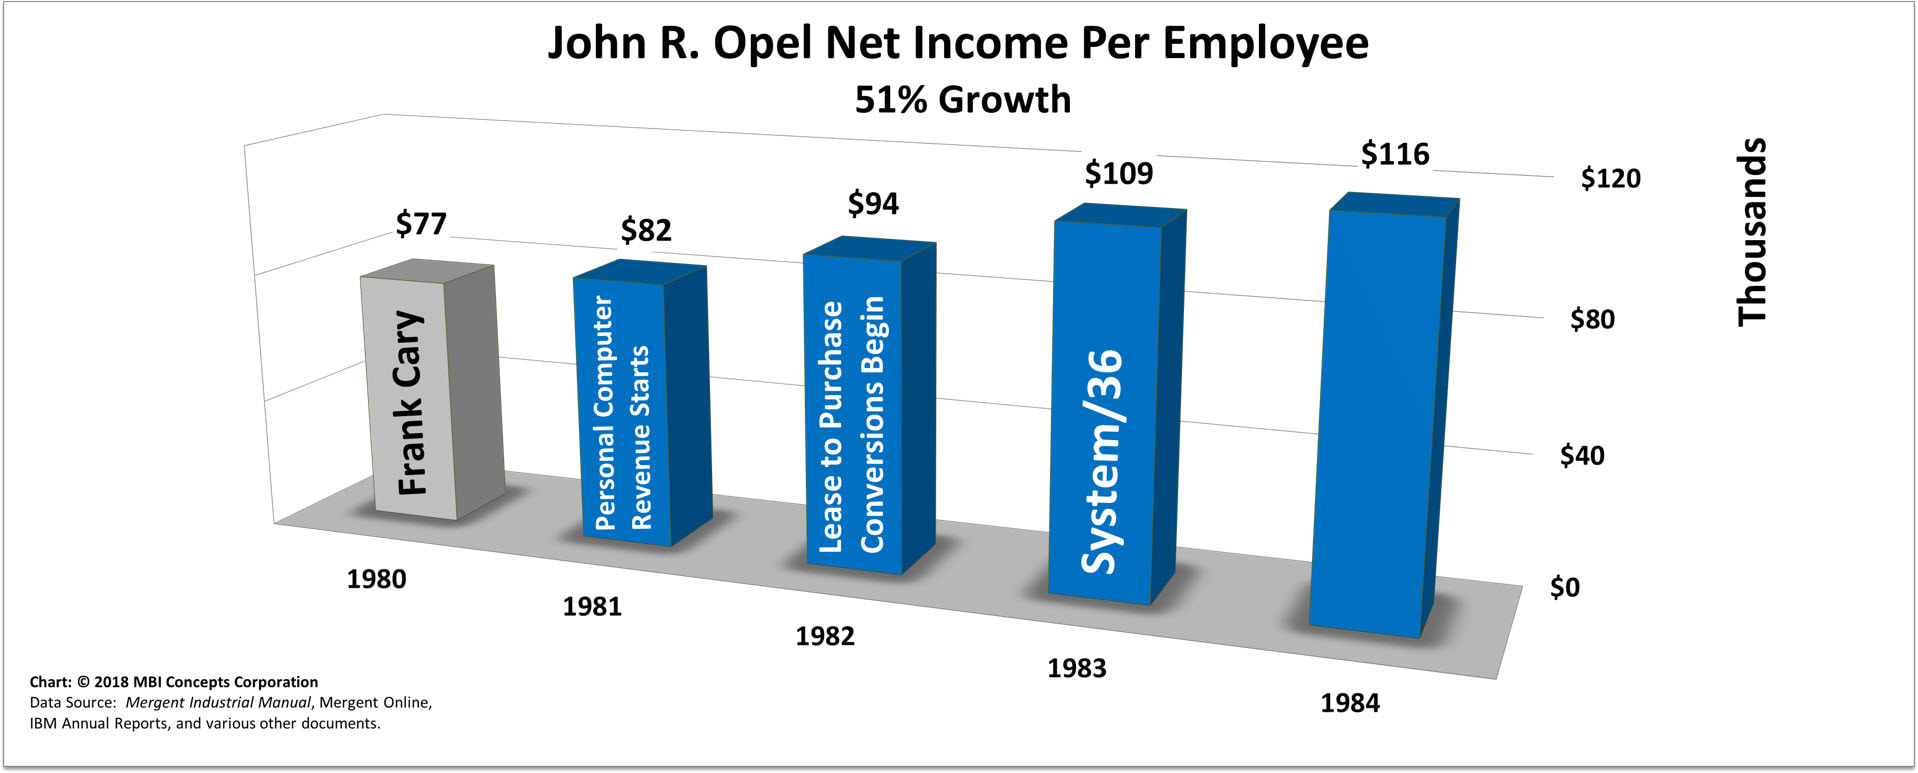 Bar chart of John R. Opel's Yearly Net Income per Employee over his 4 years as IBM's CEO from 1981 to 1984